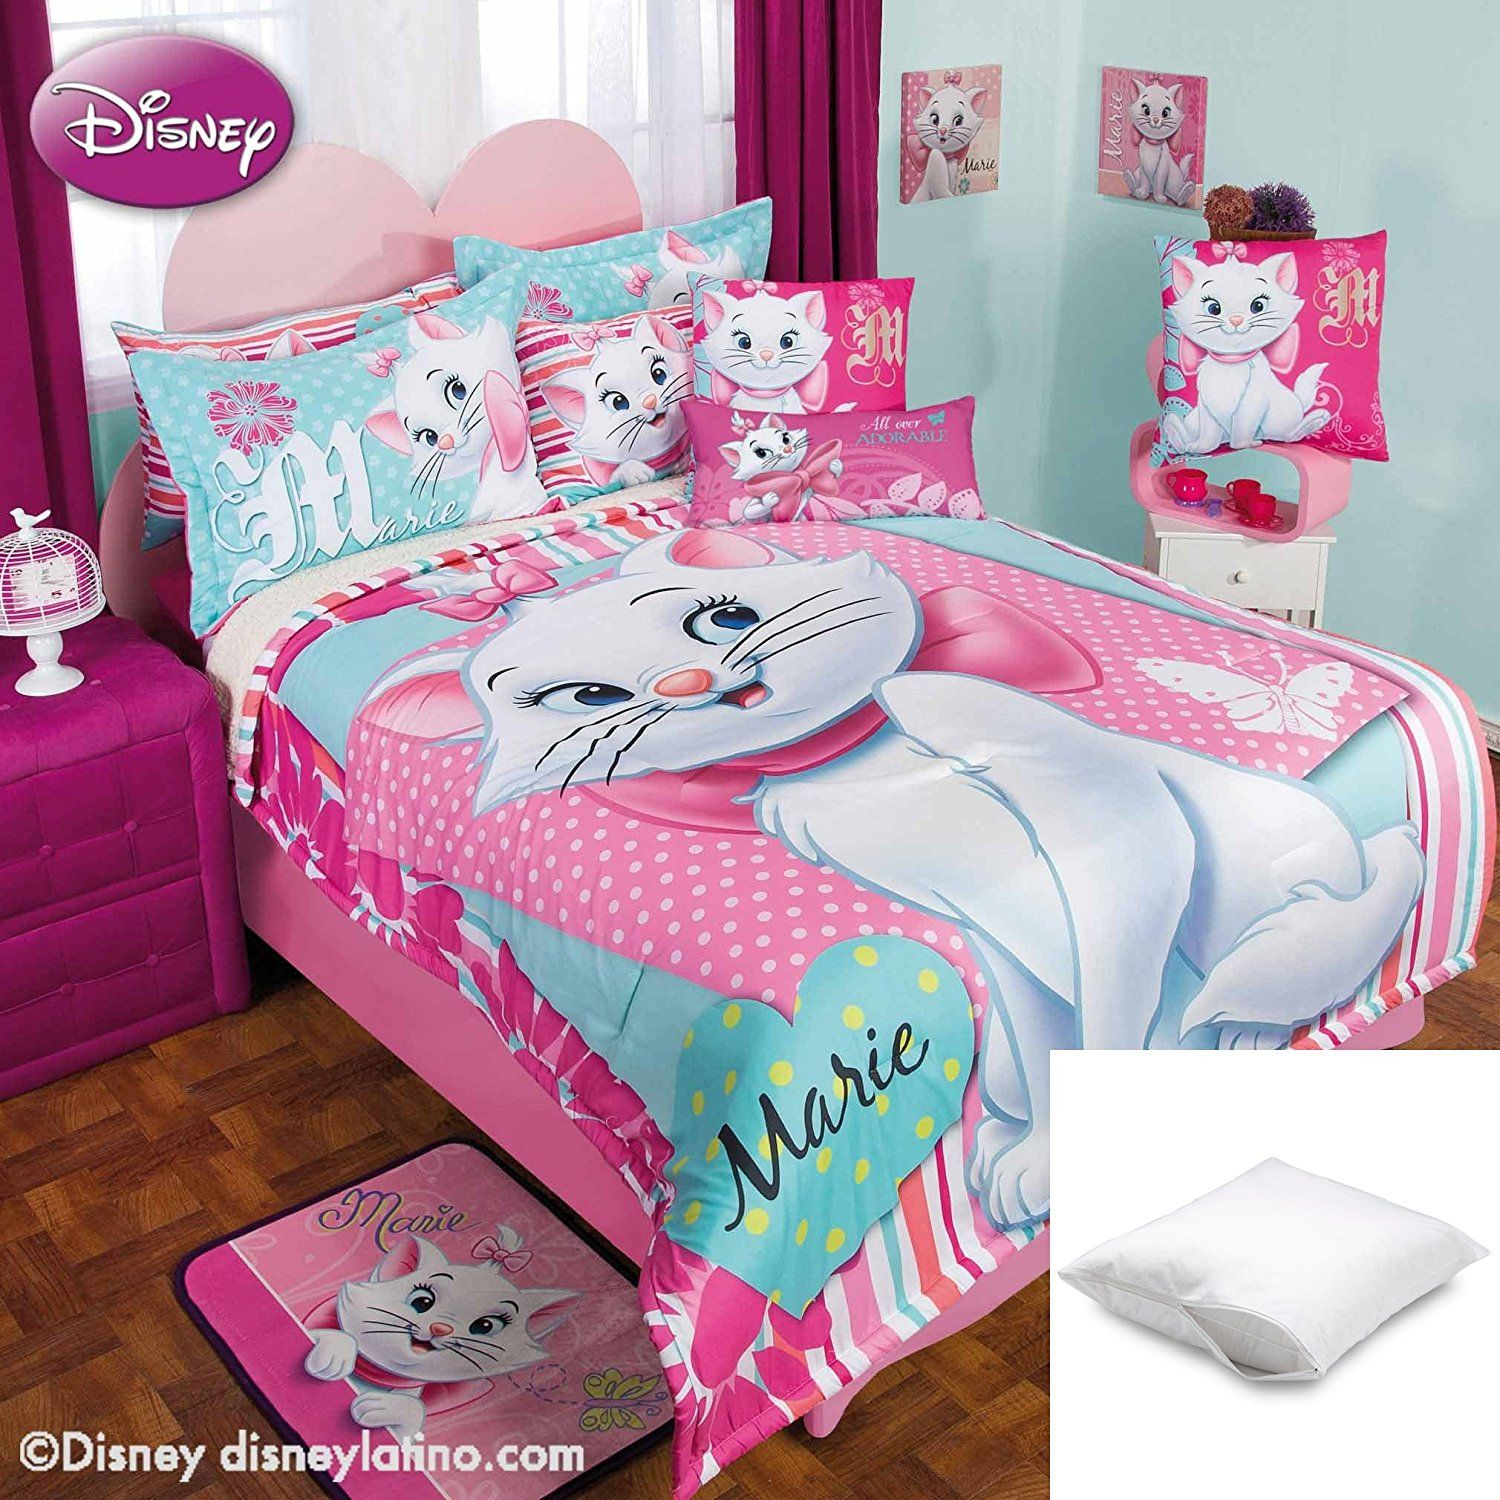 full winter white duvet quilts product size king thick queen fleece comforter wholesale blankets twin blanket